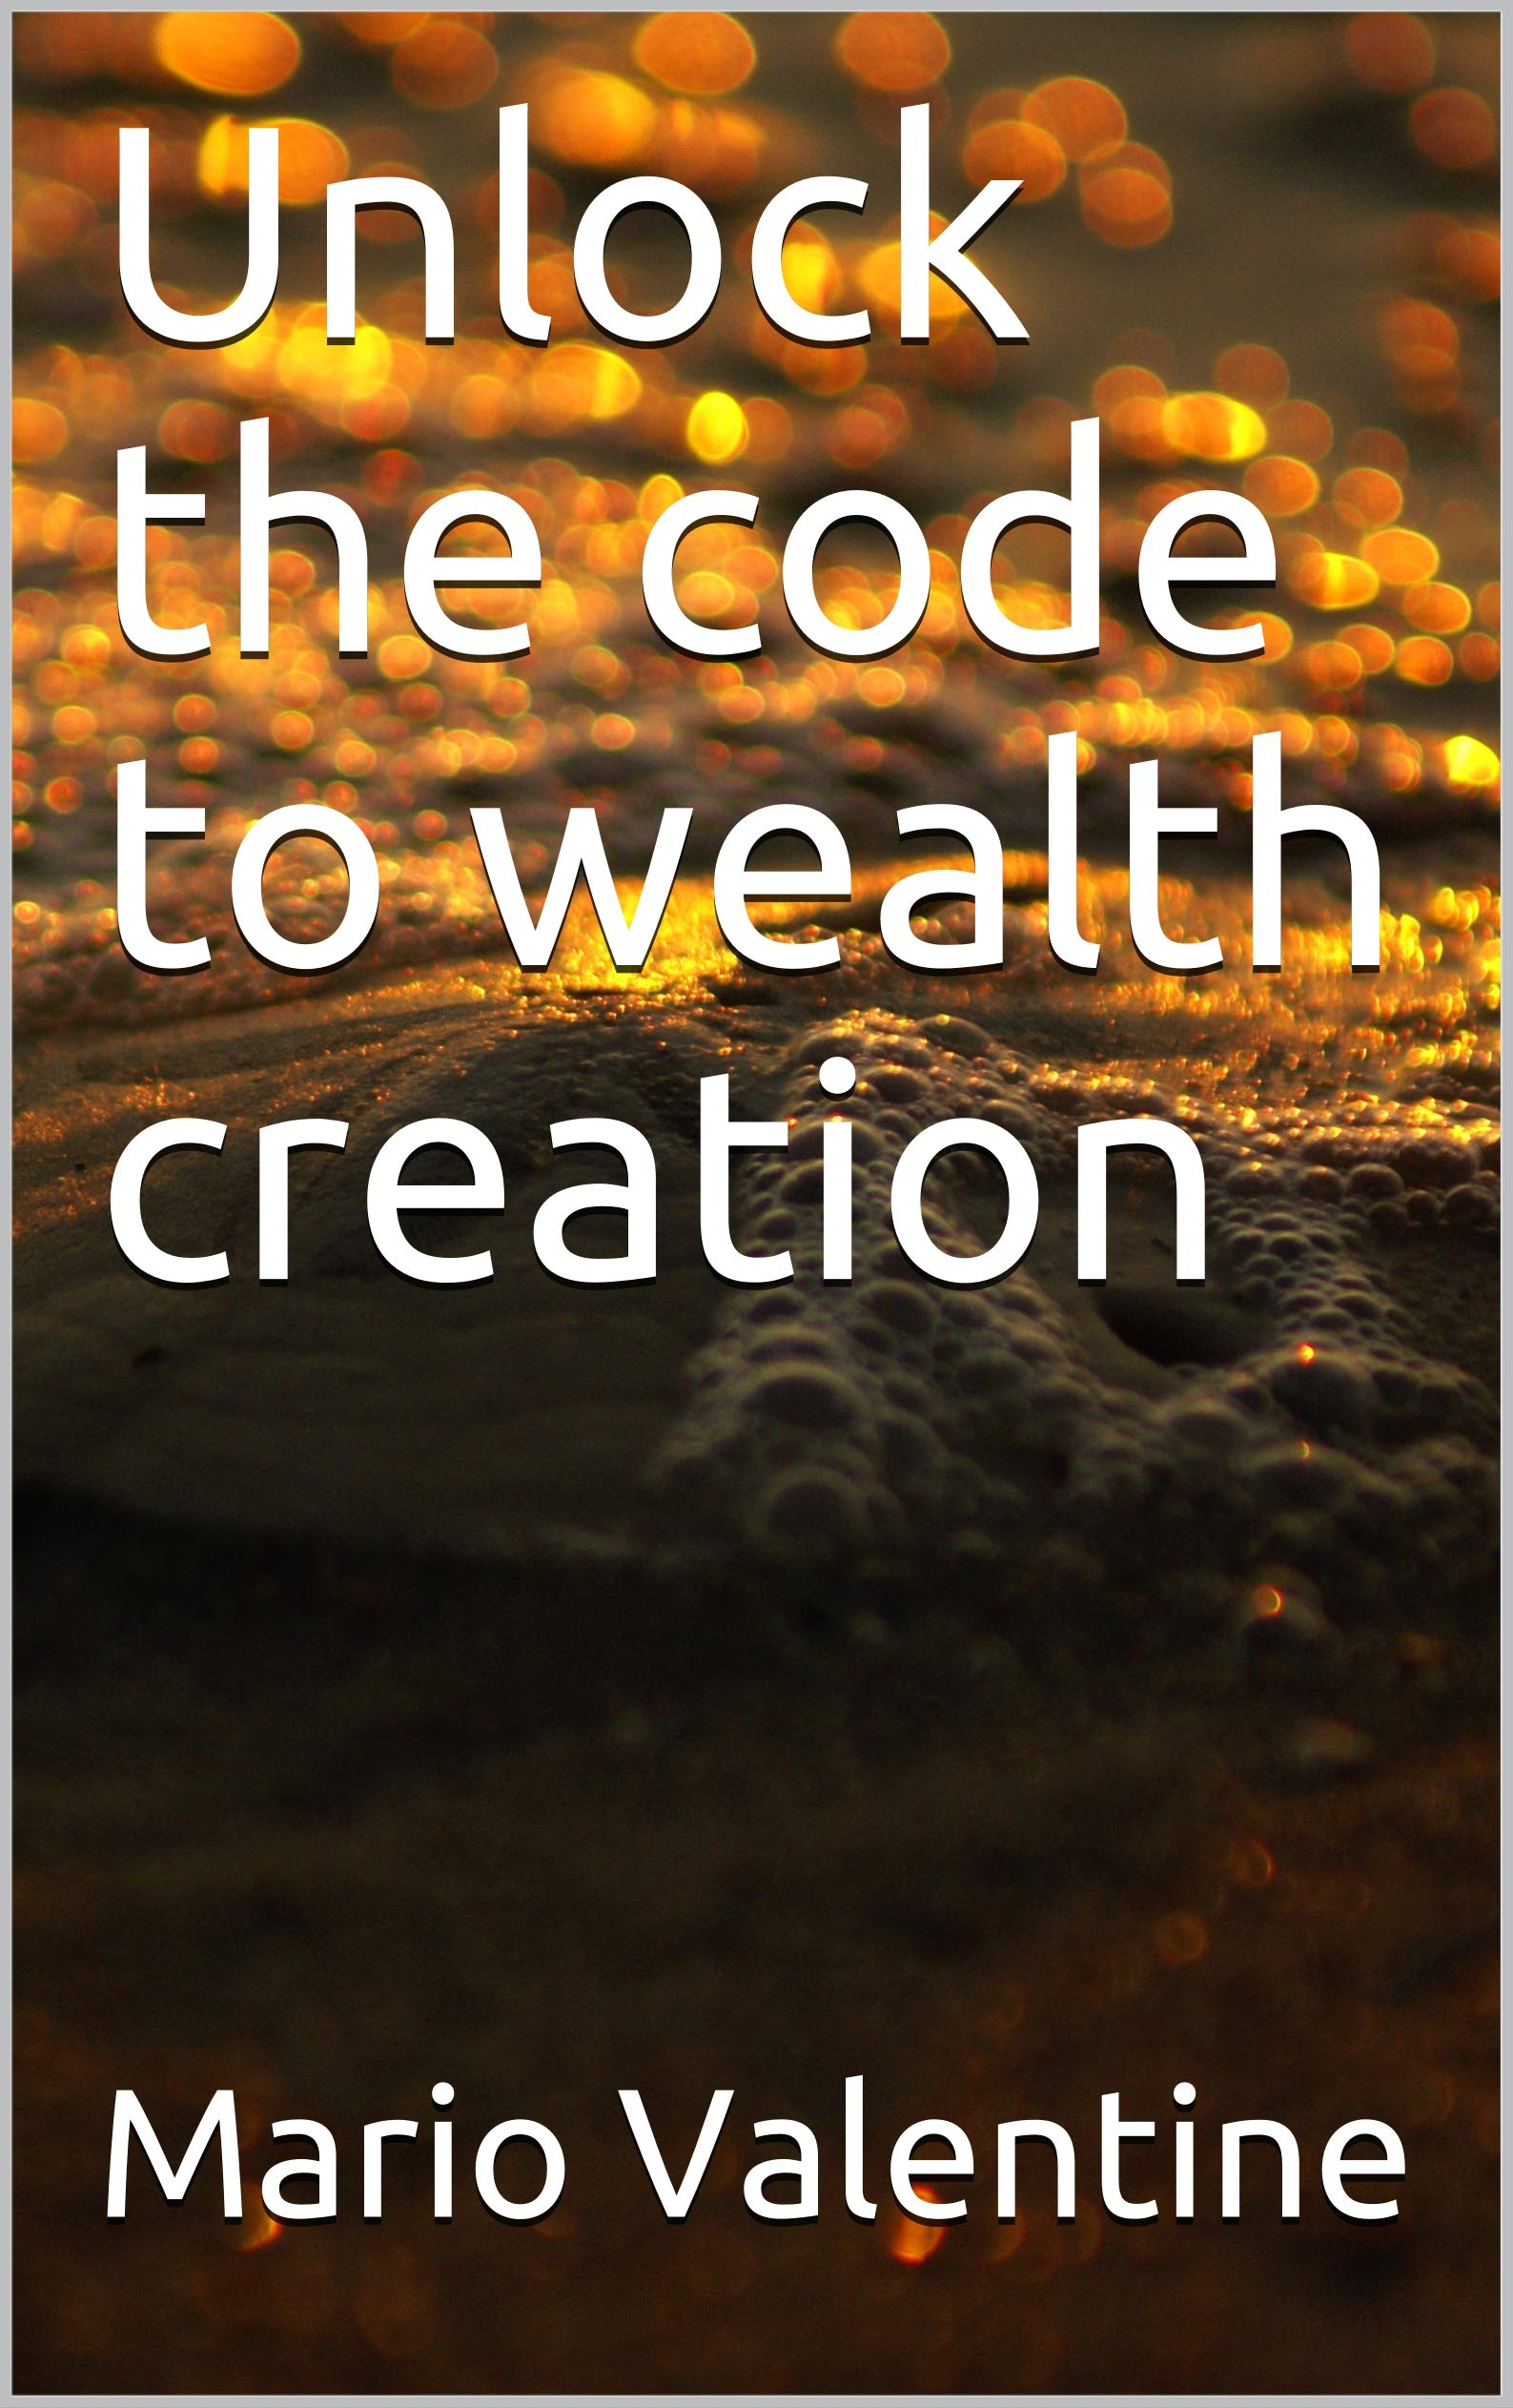 Unlock the code to wealth creation